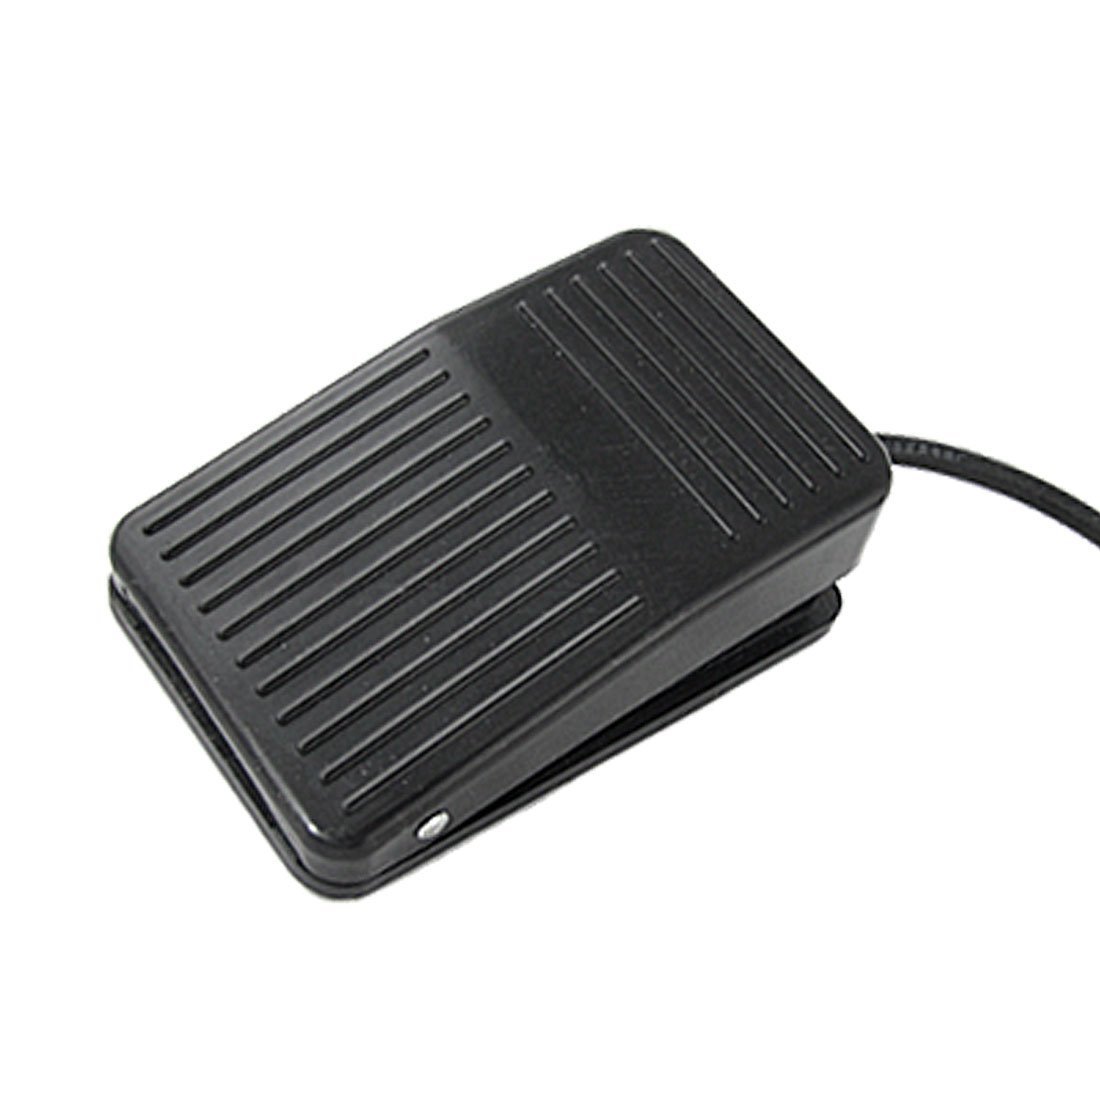 Black Nonslip Plastic CNC Treadle Foot Pedal Switch AC 220V 10A SODT NO NC